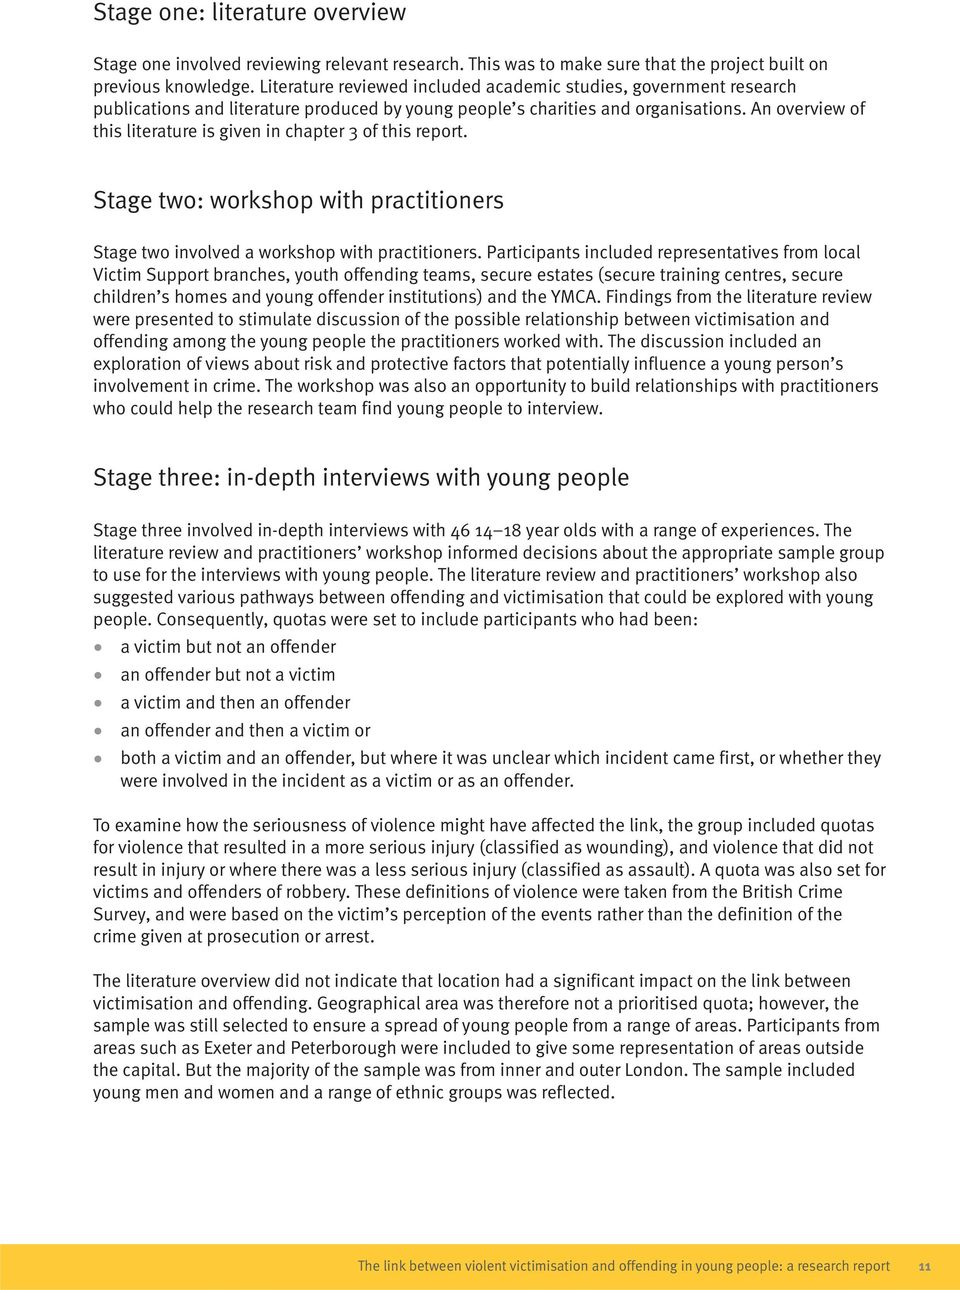 An overview of this literature is given in chapter 3 of this report. Stage two: workshop with practitioners Stage two involved a workshop with practitioners.